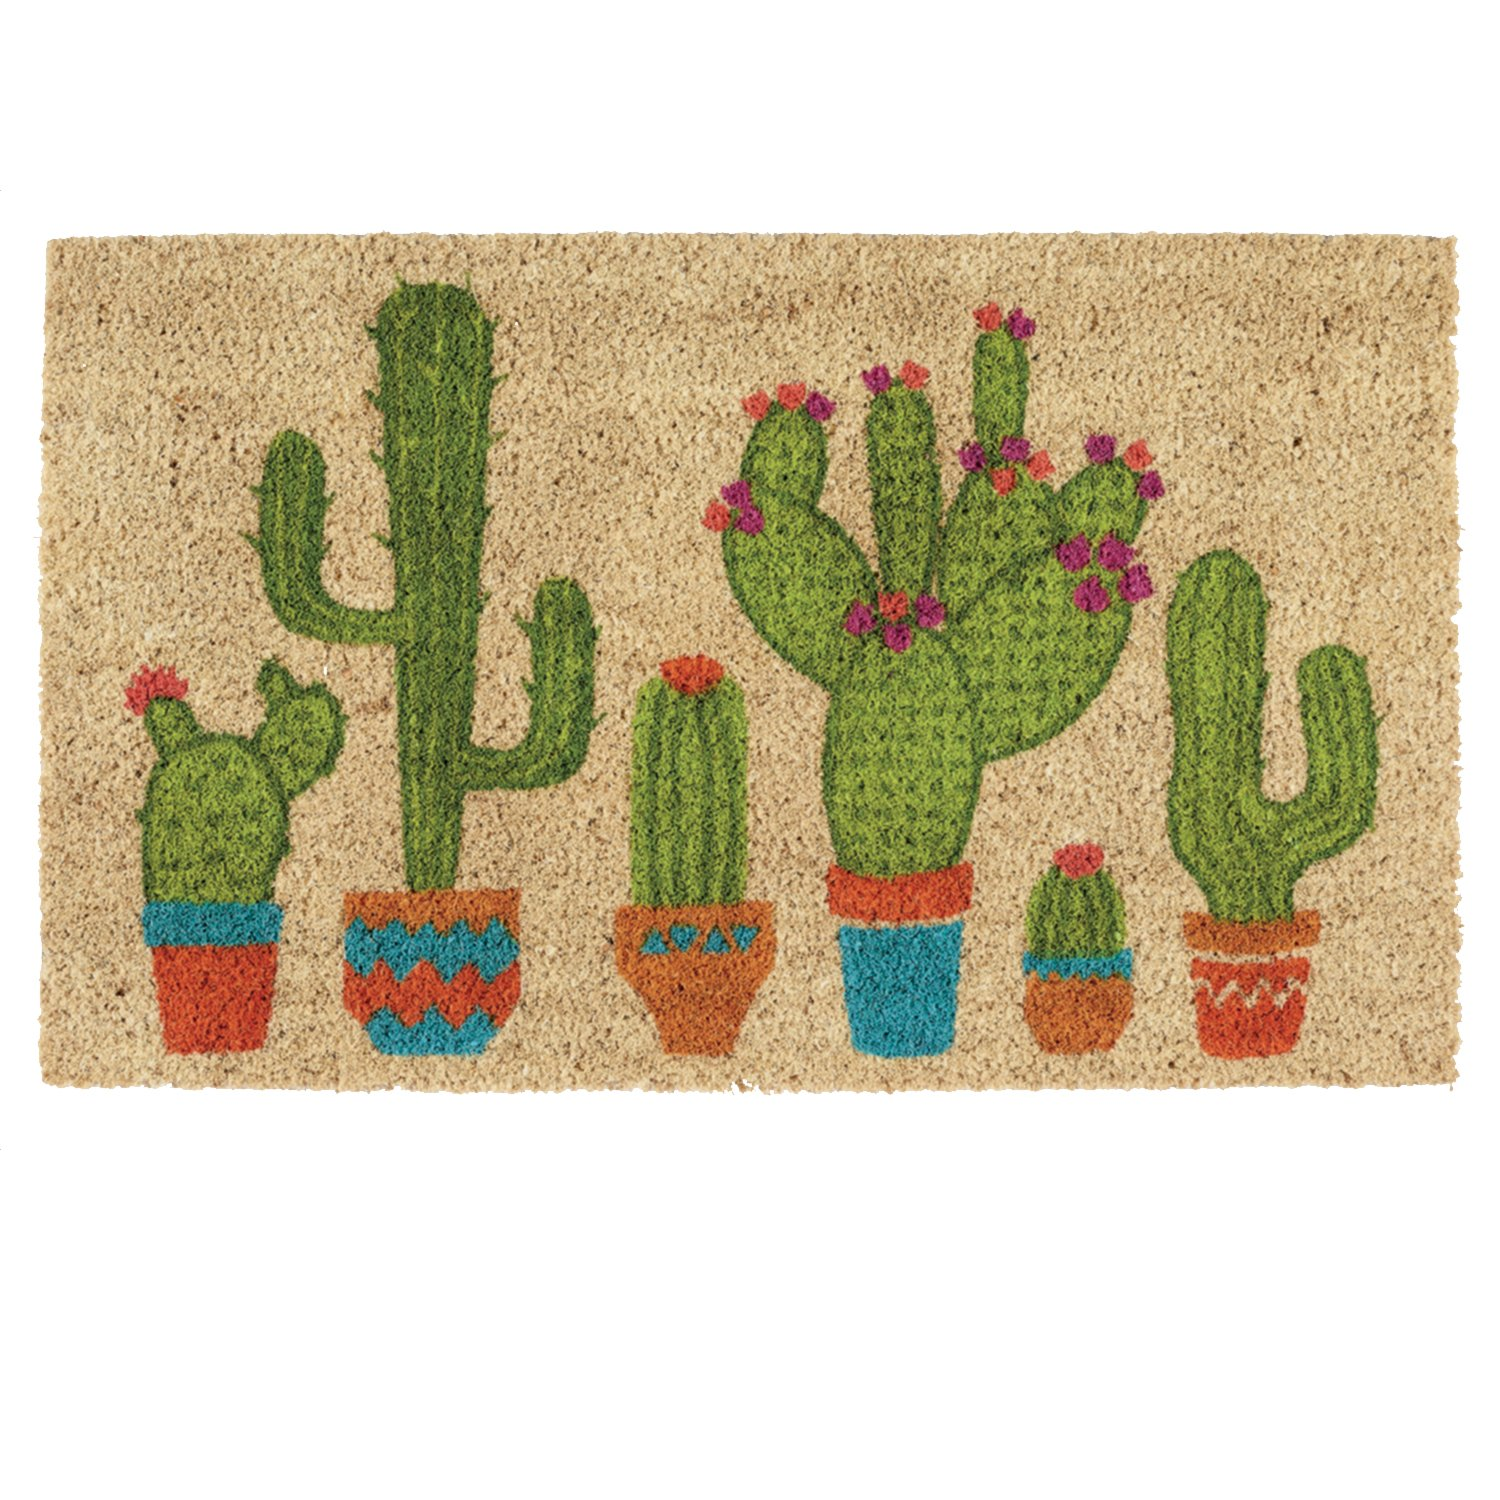 DII Indoor/Outdoor Natural Coir Easy Clean Rubber Non Slip Backing Entry Way Doormat for Patio, Front Door, All Weather Exterior Doors, 18 x 30 - Cactus by DII